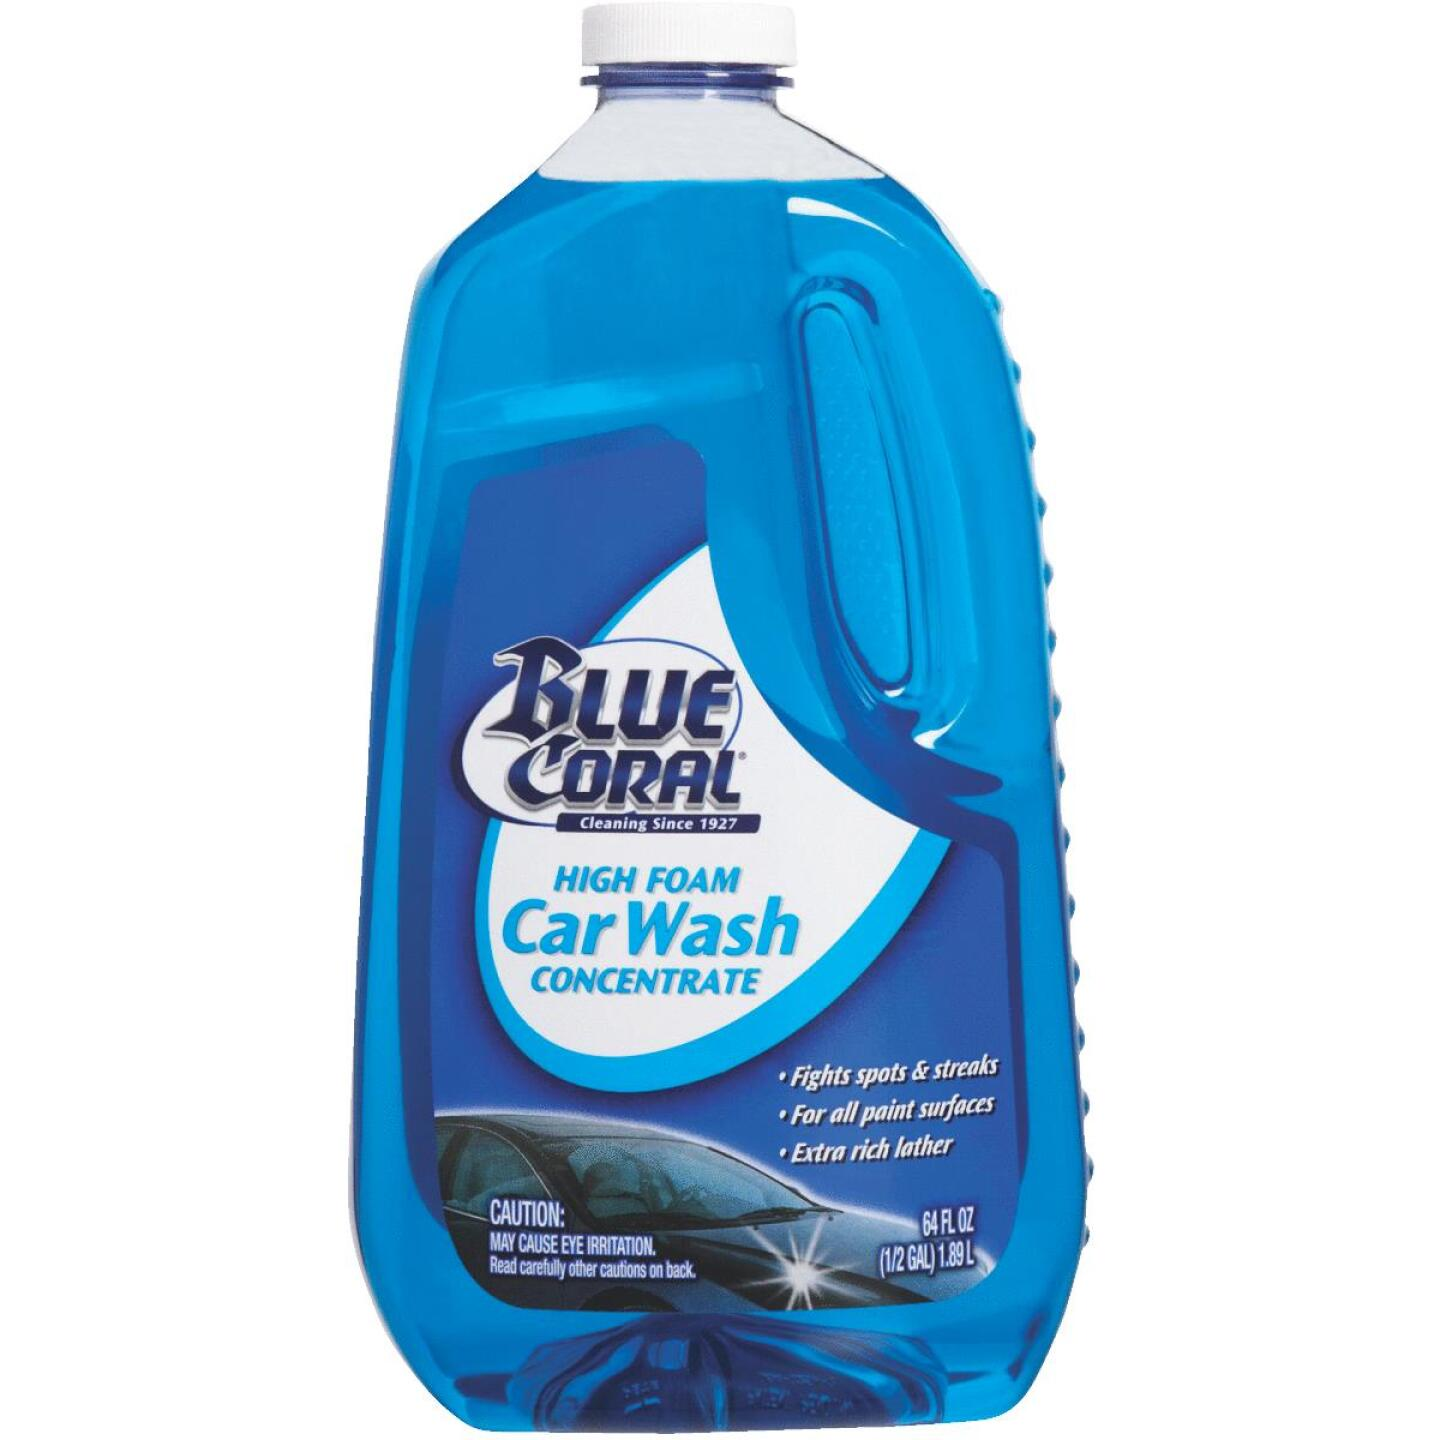 Blue Coral 64 Oz. Liquid High Foam Concentrate Car Wash Image 1